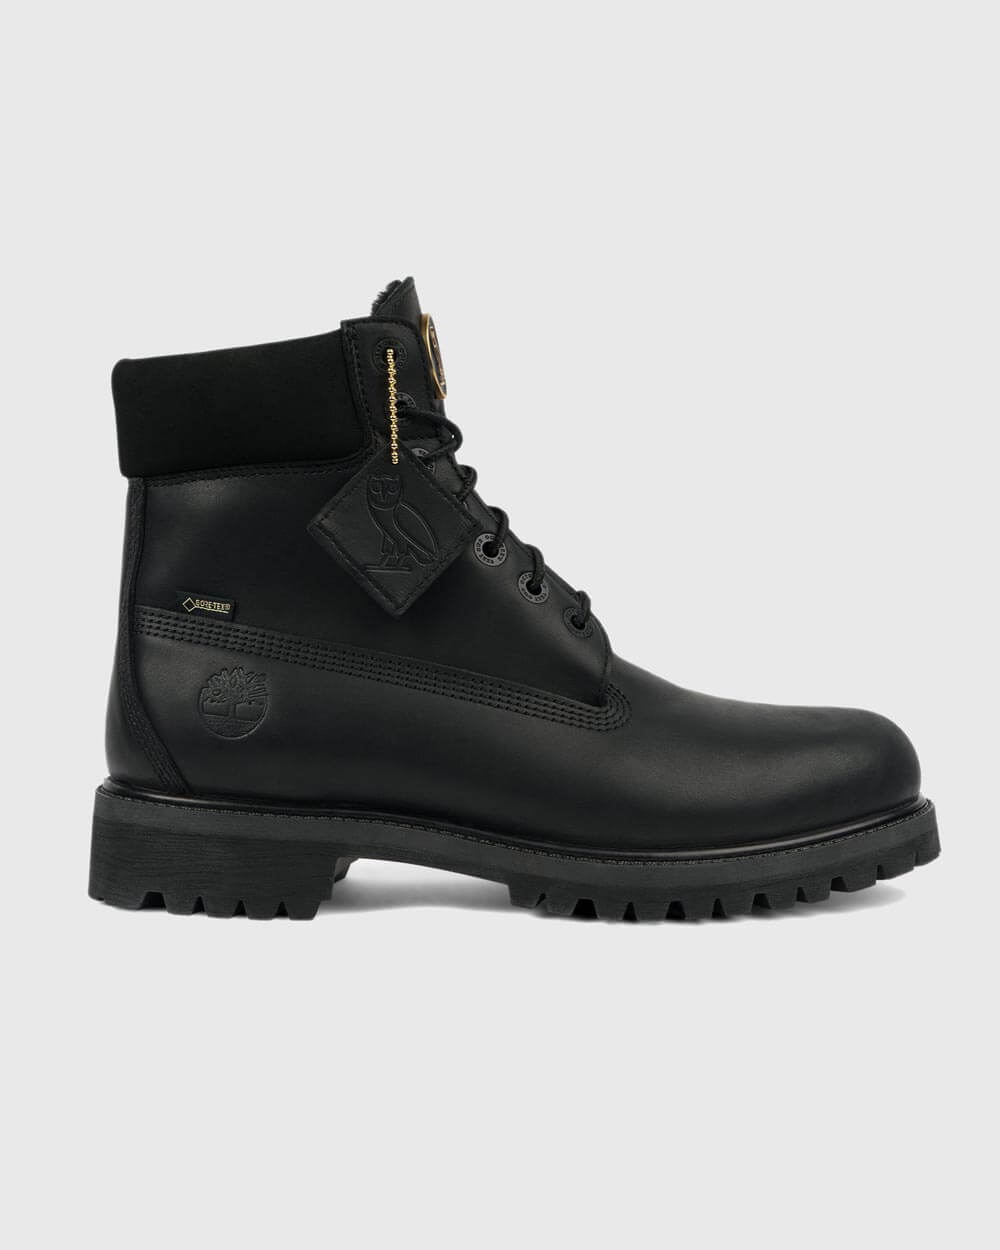 2abec06d0b29 OVO x TIMBERLAND 6-INCH - BLACK – October s Very Own Online US